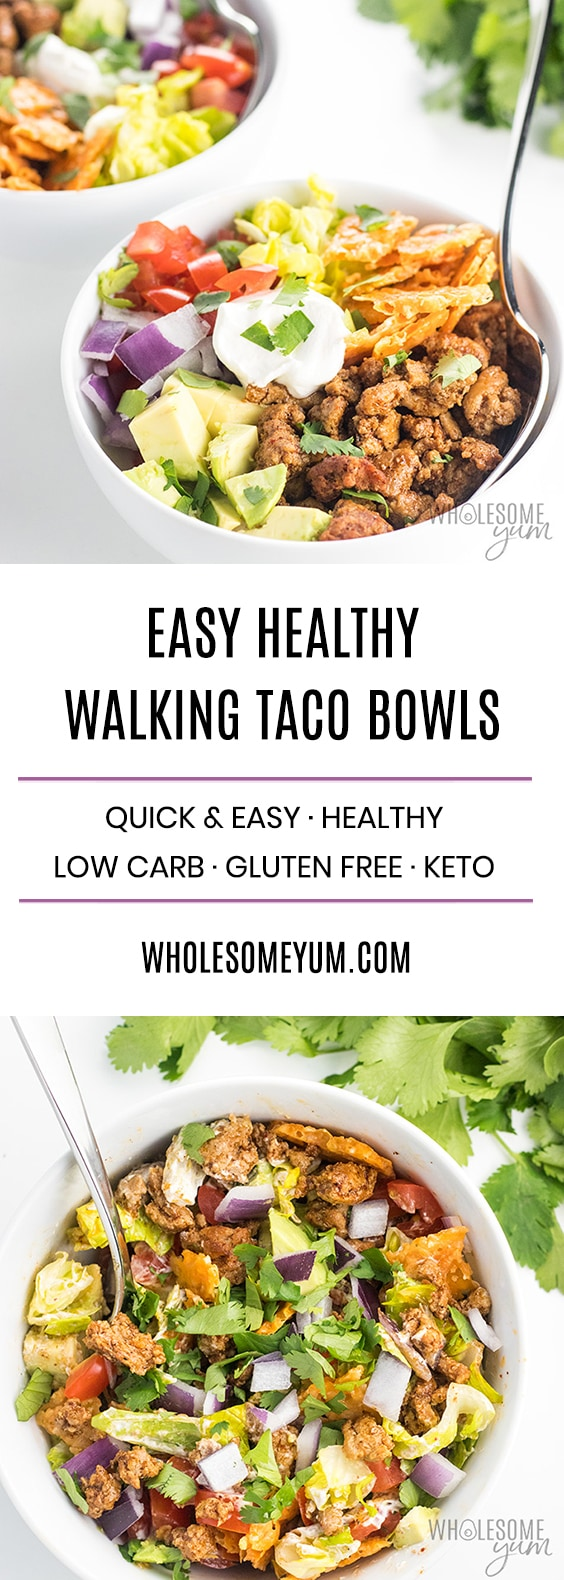 How To Make a Walking Taco Bowl - Recipe for a Crowd or Weeknight - These homemade taco bowls are an EASY recipe for how to make walking tacos. They are delicious and healthy! Learn how to make a turkey taco bowl for 4-6 people, or even walking tacos for a crowd of 50 or 100 people.